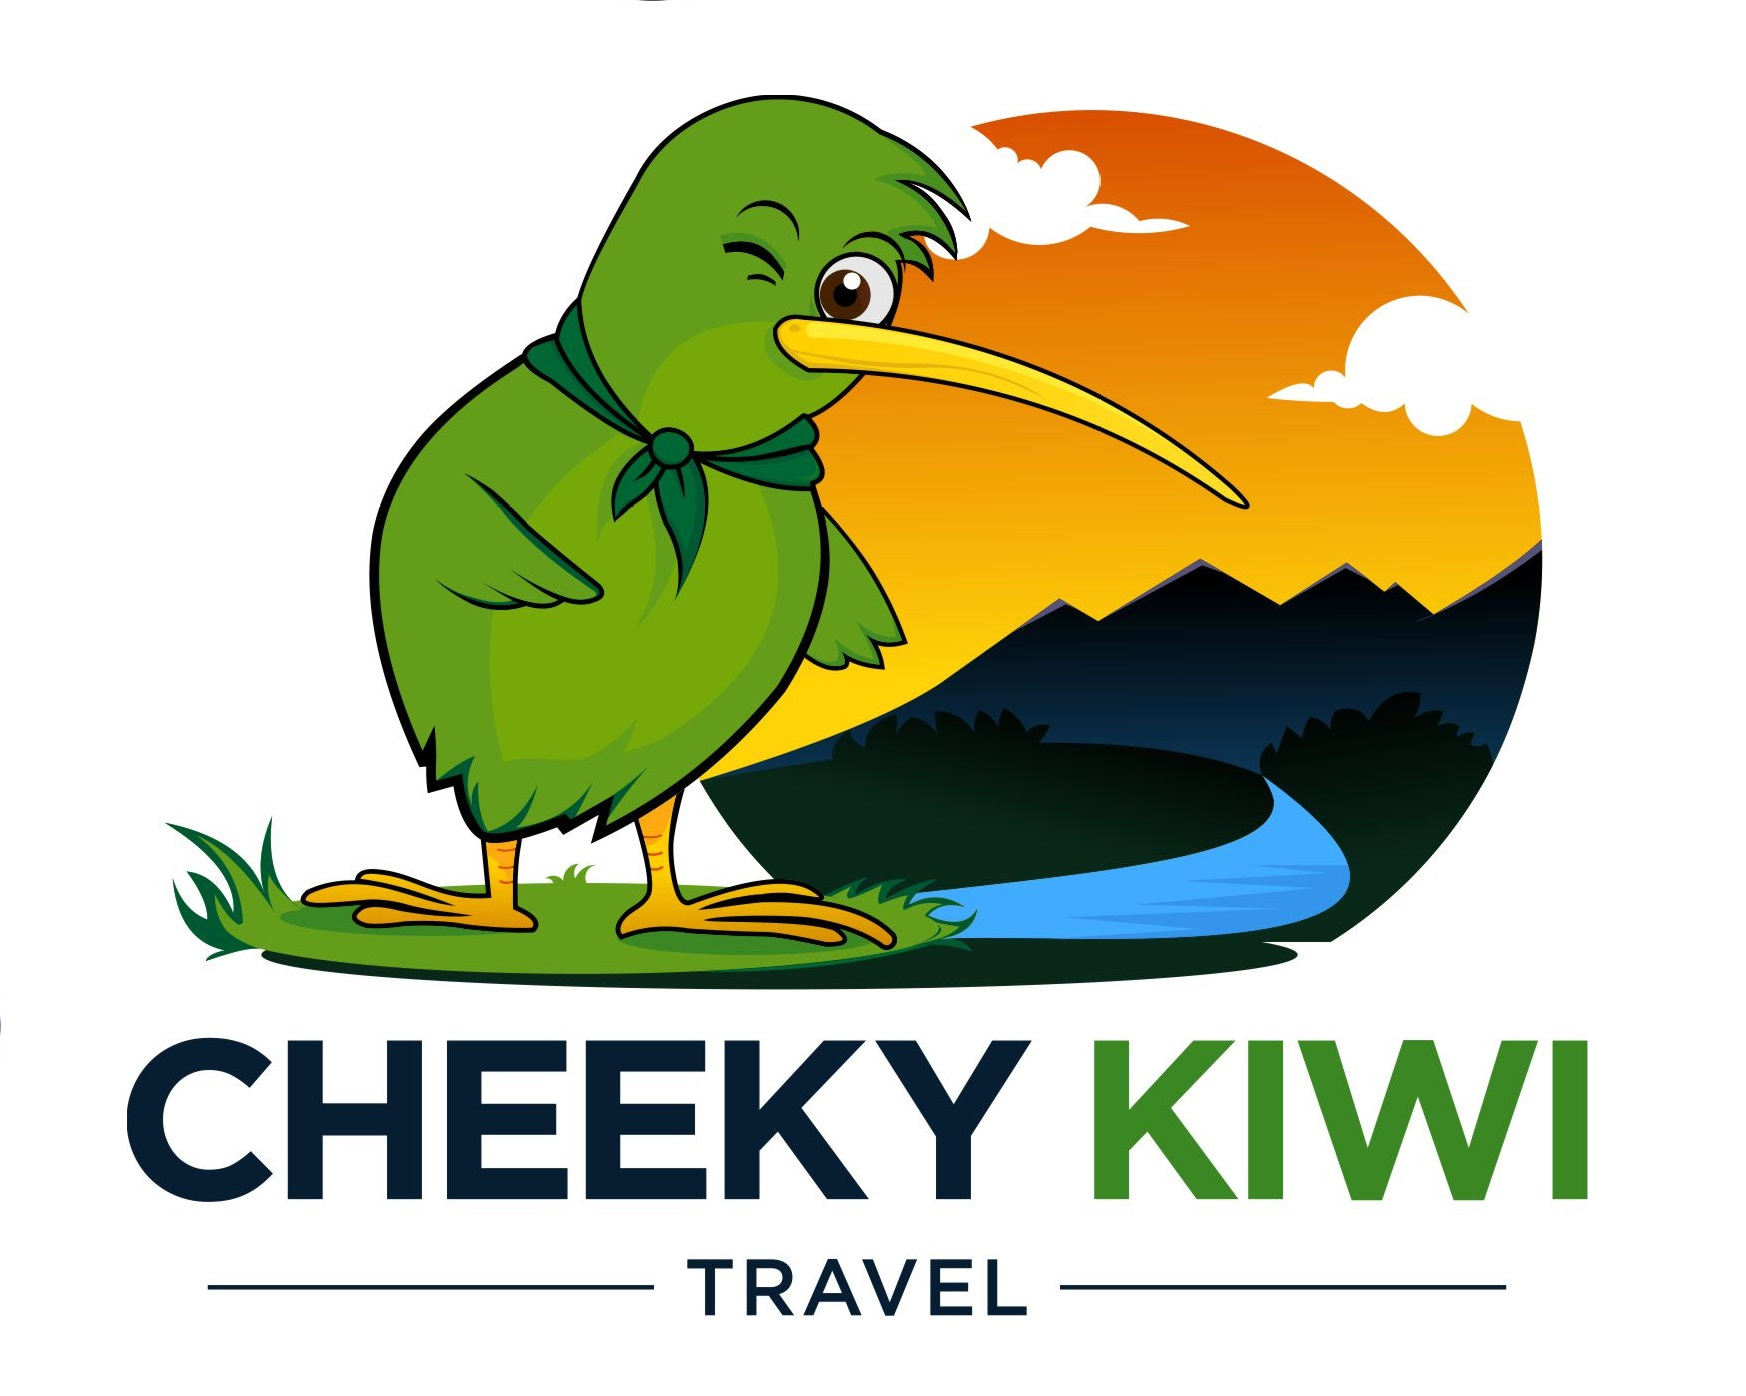 Cheeky Kiwi Travel logo.jpg